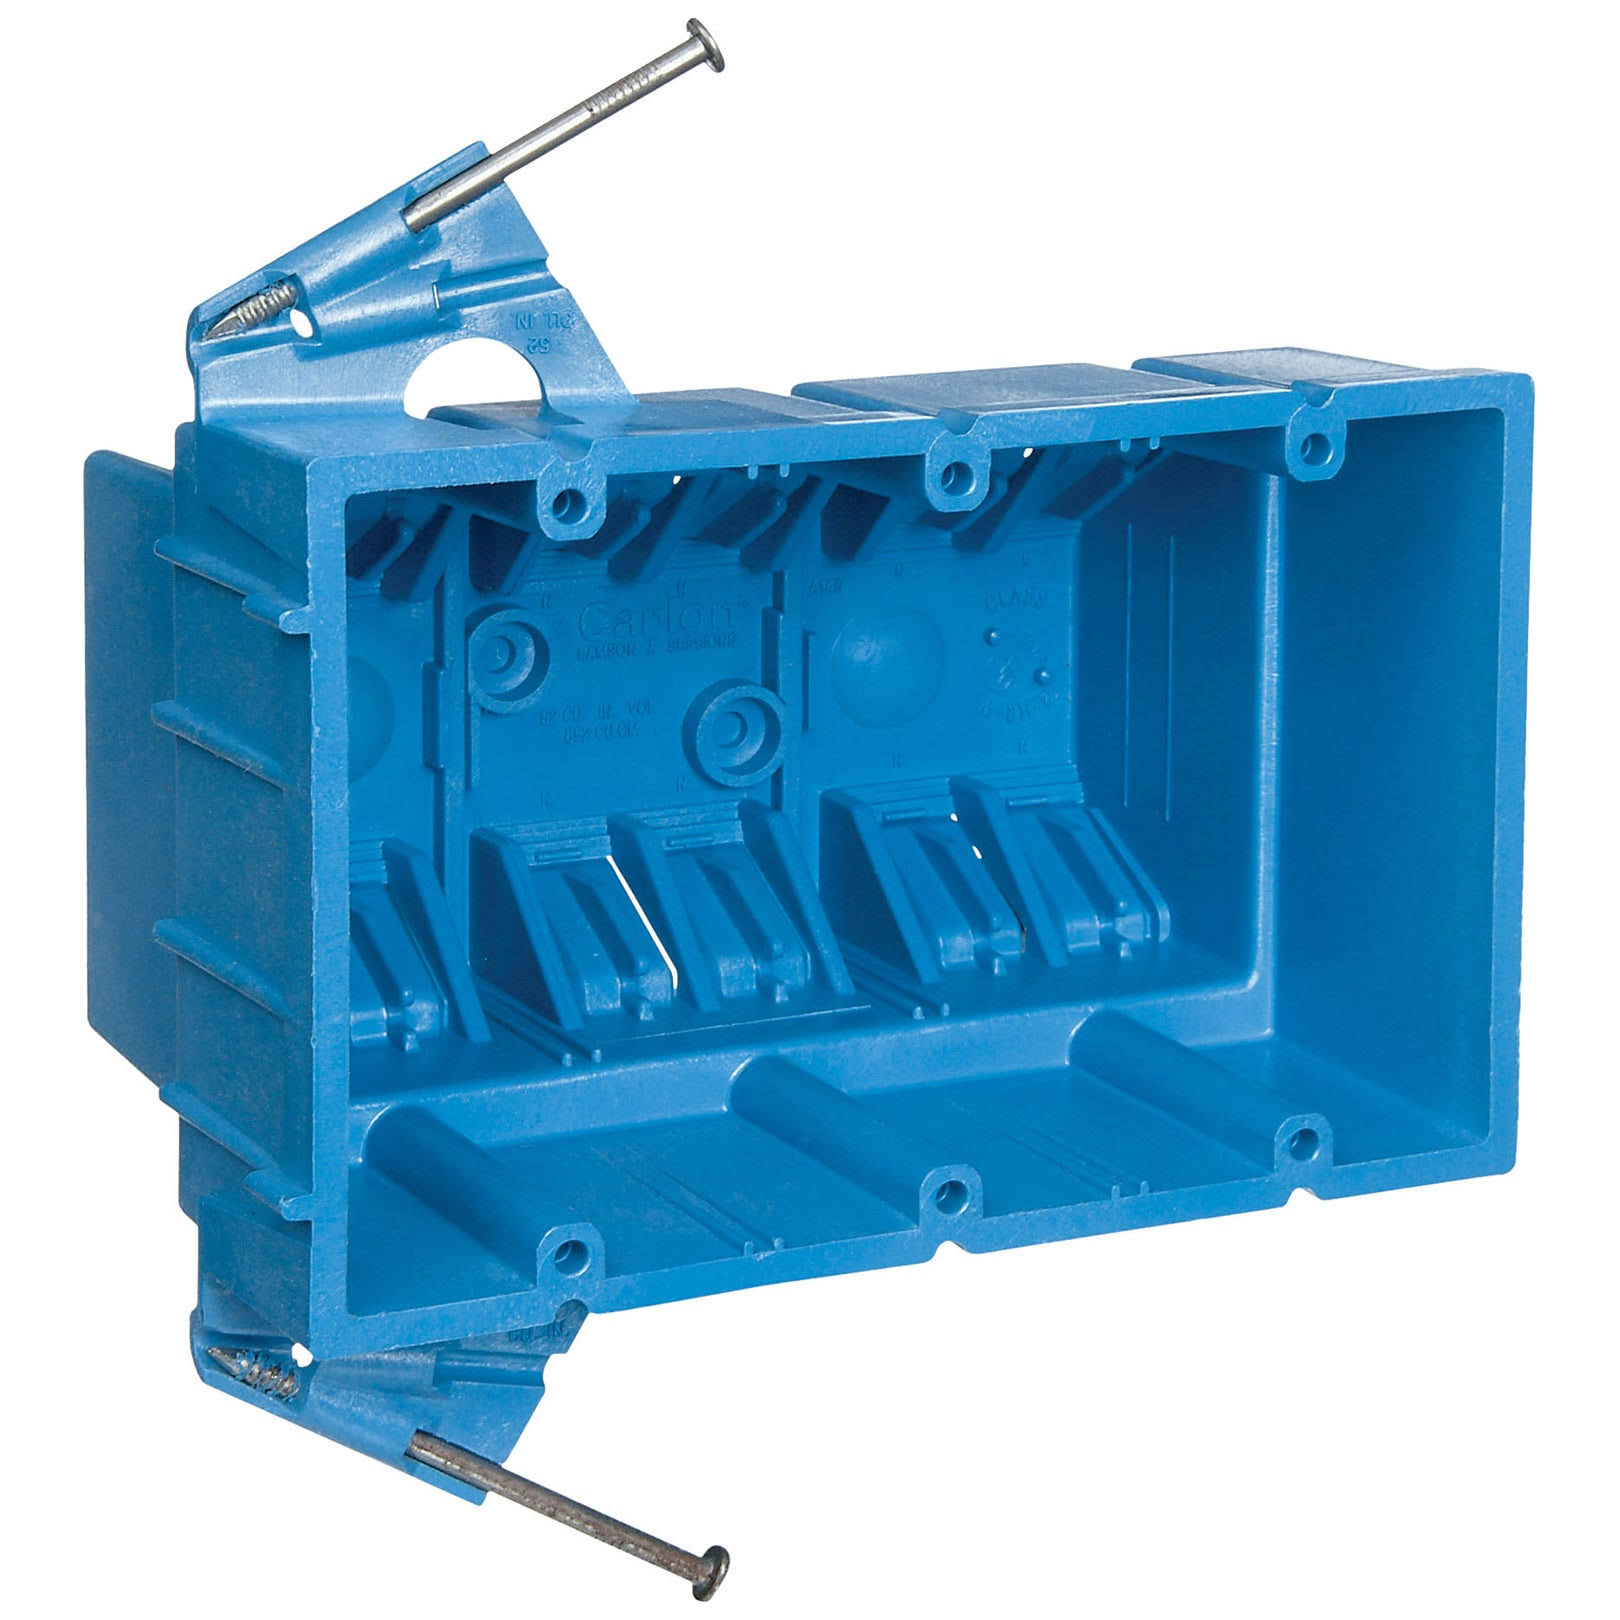 Thomas & Betts 3-Gang Electrical Hard Shell Box - 53 cu. in